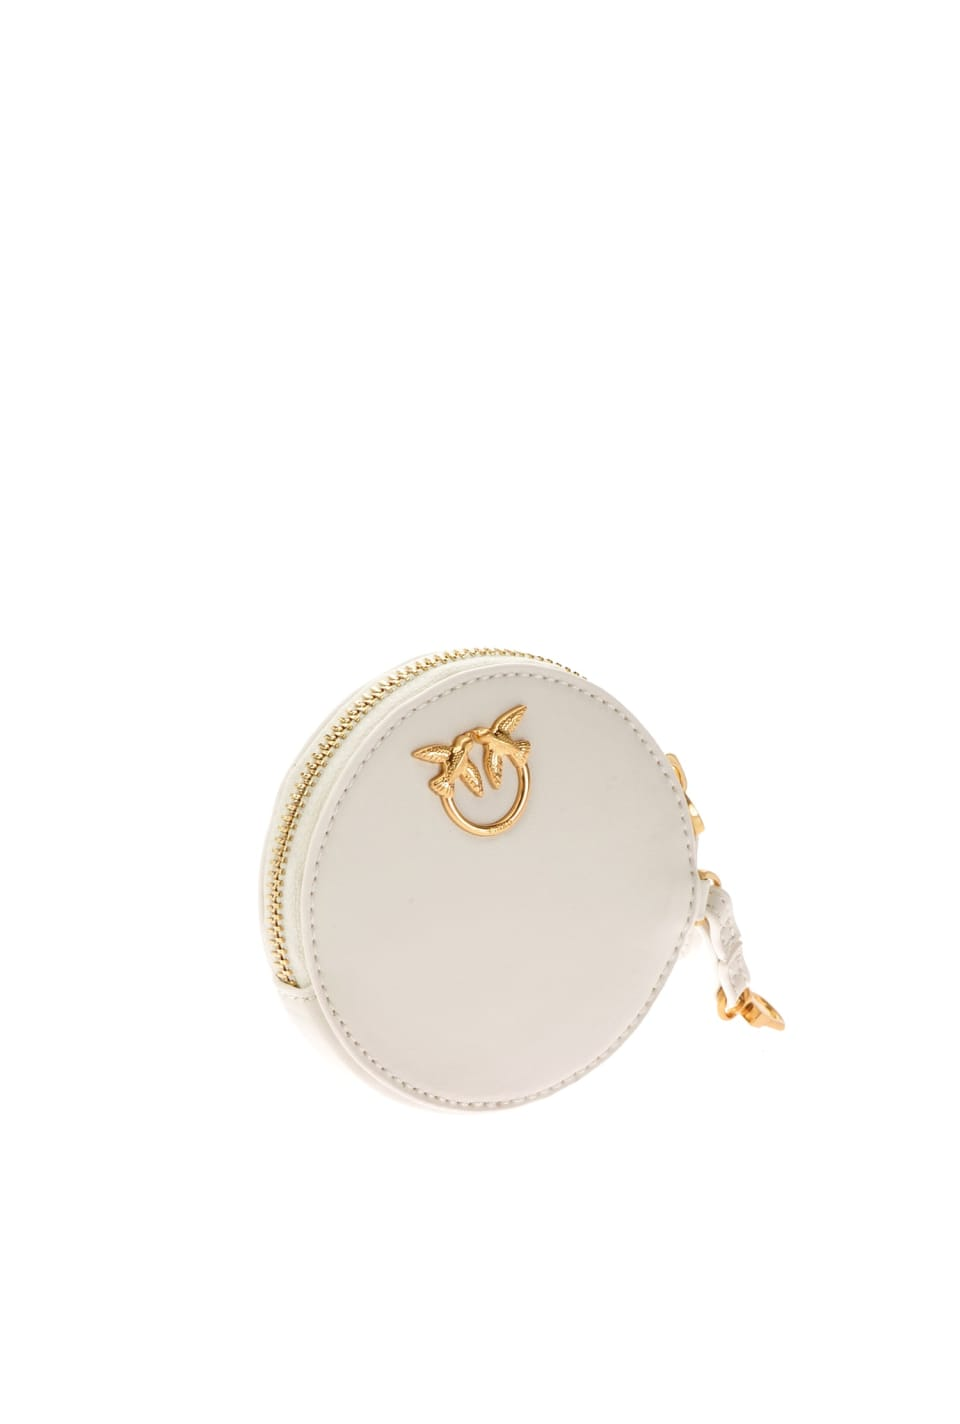 PINKO x Lucia Heffernan coin purse